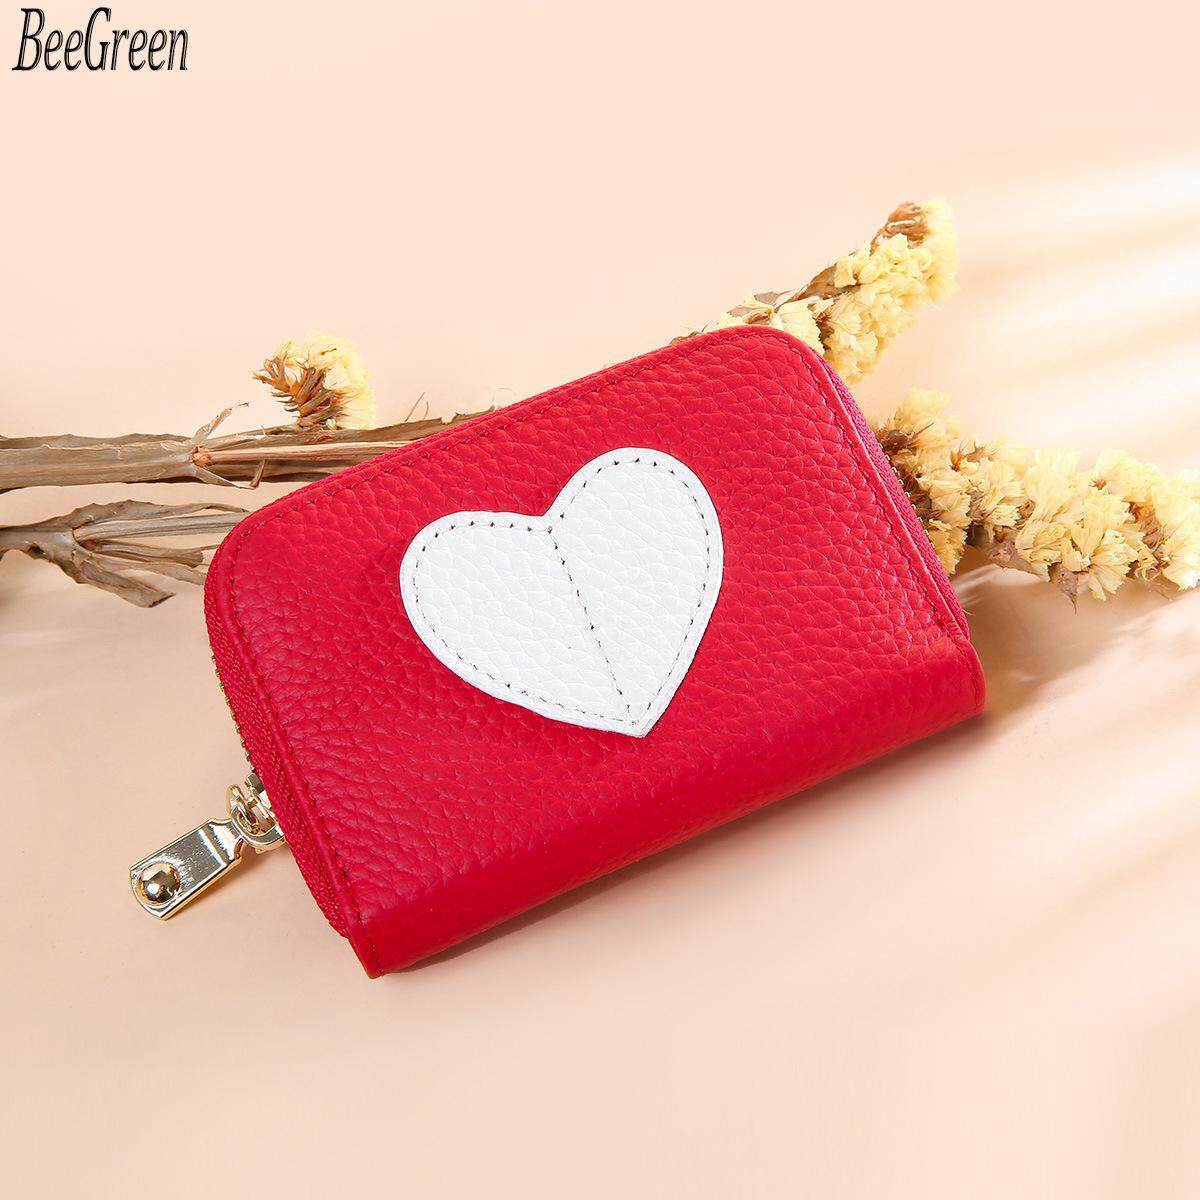 BeeGreen Mini Short Wallet For Women Genuine Leather Heart Shape Decoration Daily Casual Coin Pocket Purse Card Holders Black Red